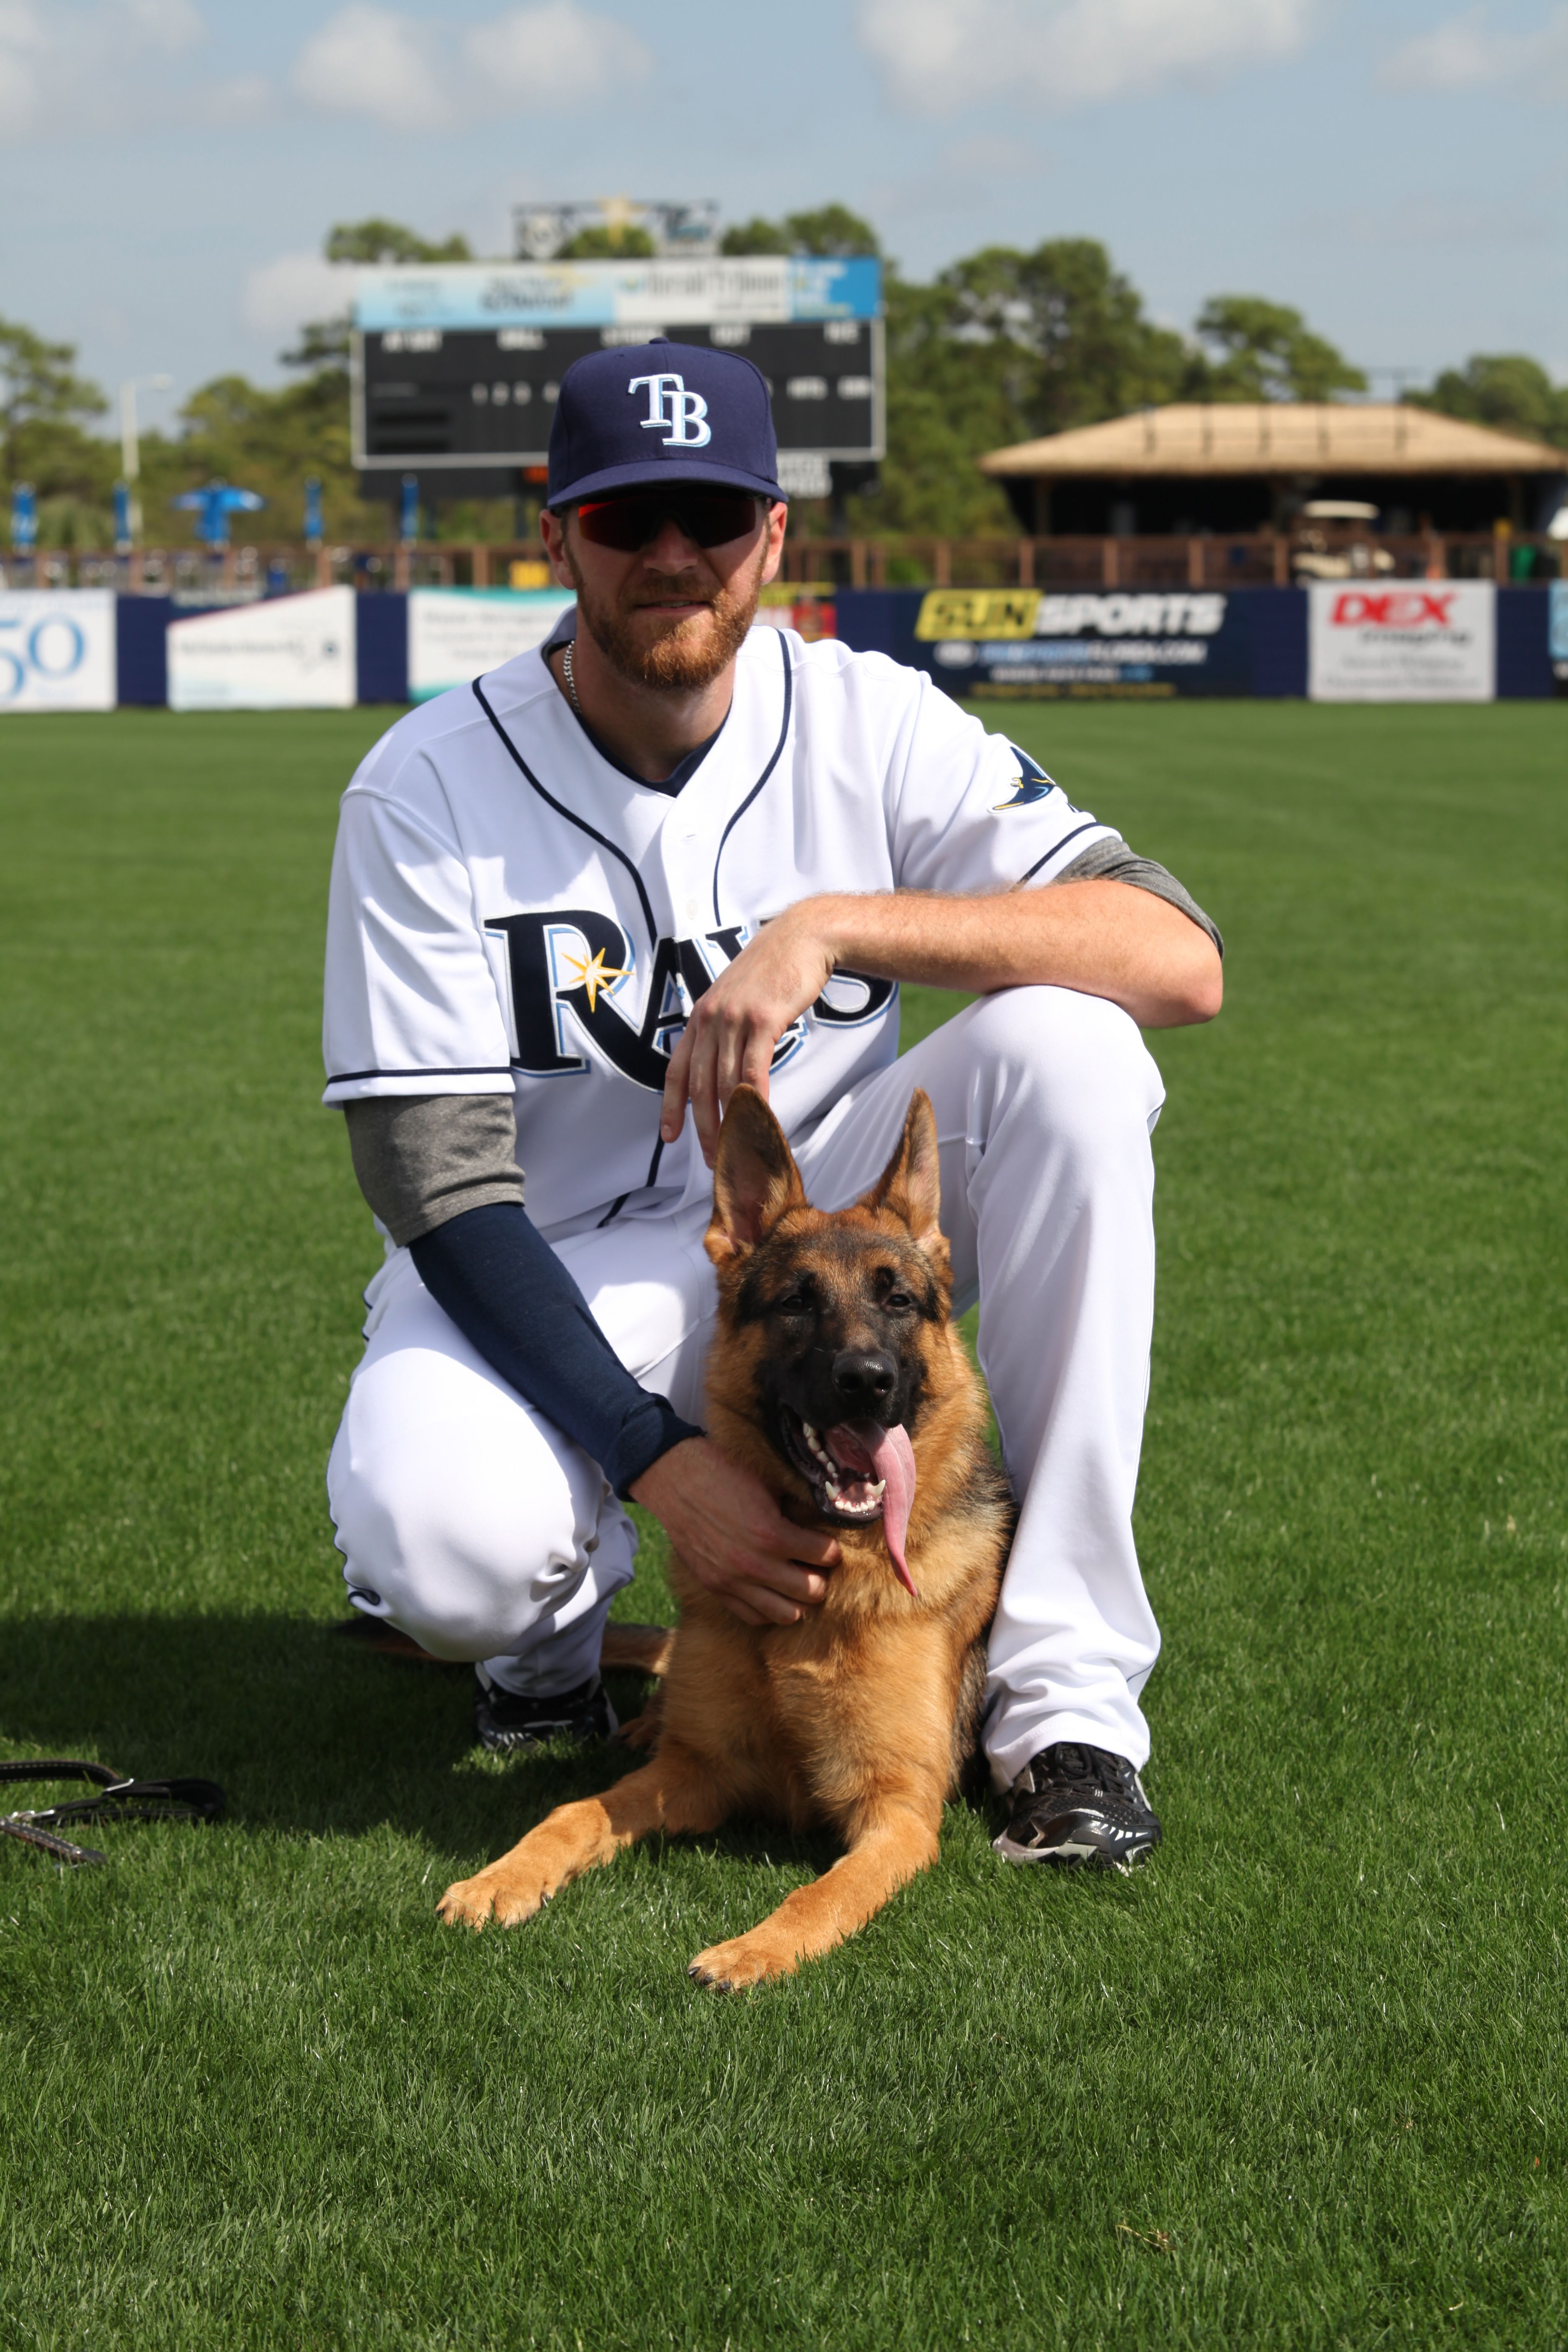 The Rays' first 'Players and Pooches' calendar goes on